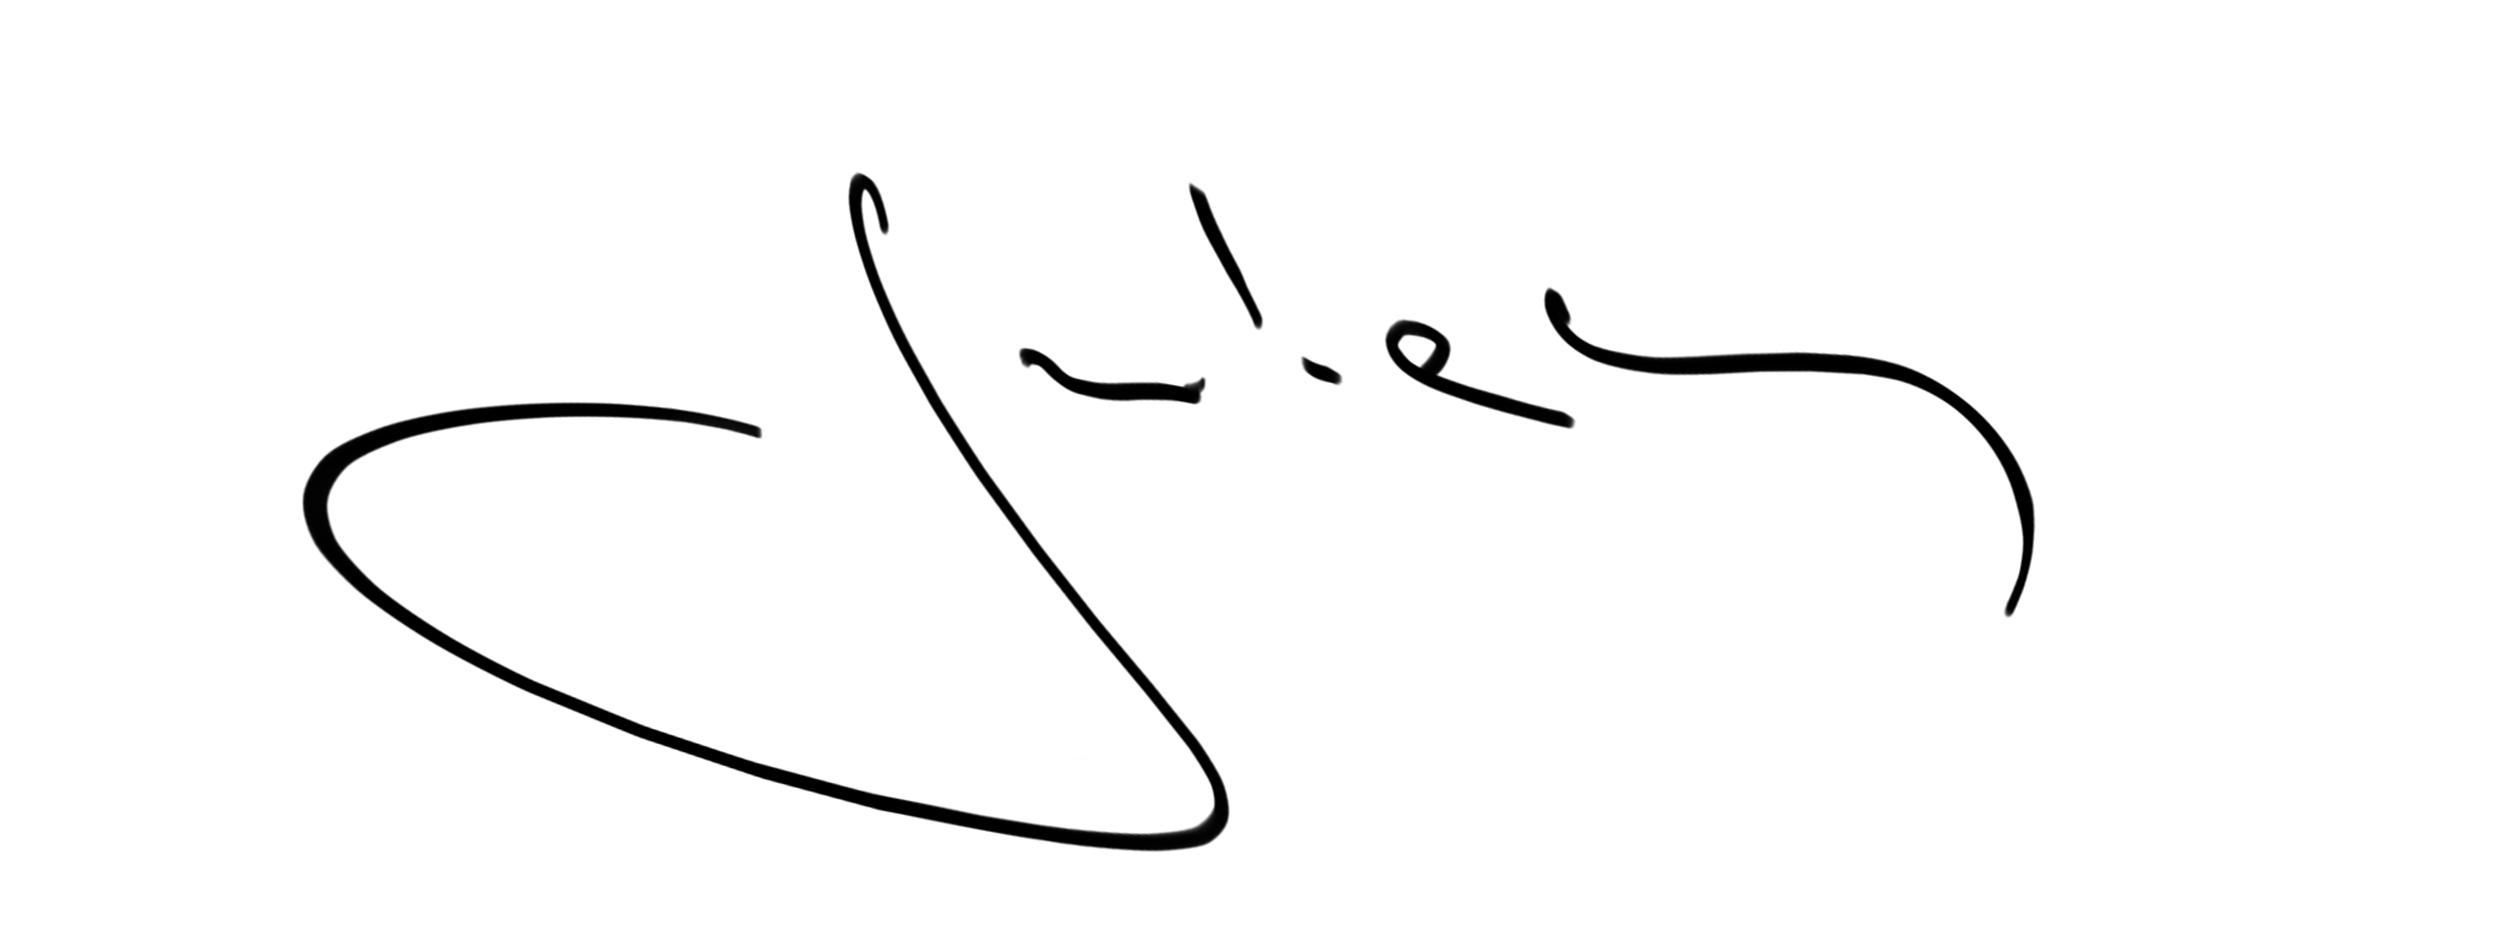 Julian Veverica's Signature